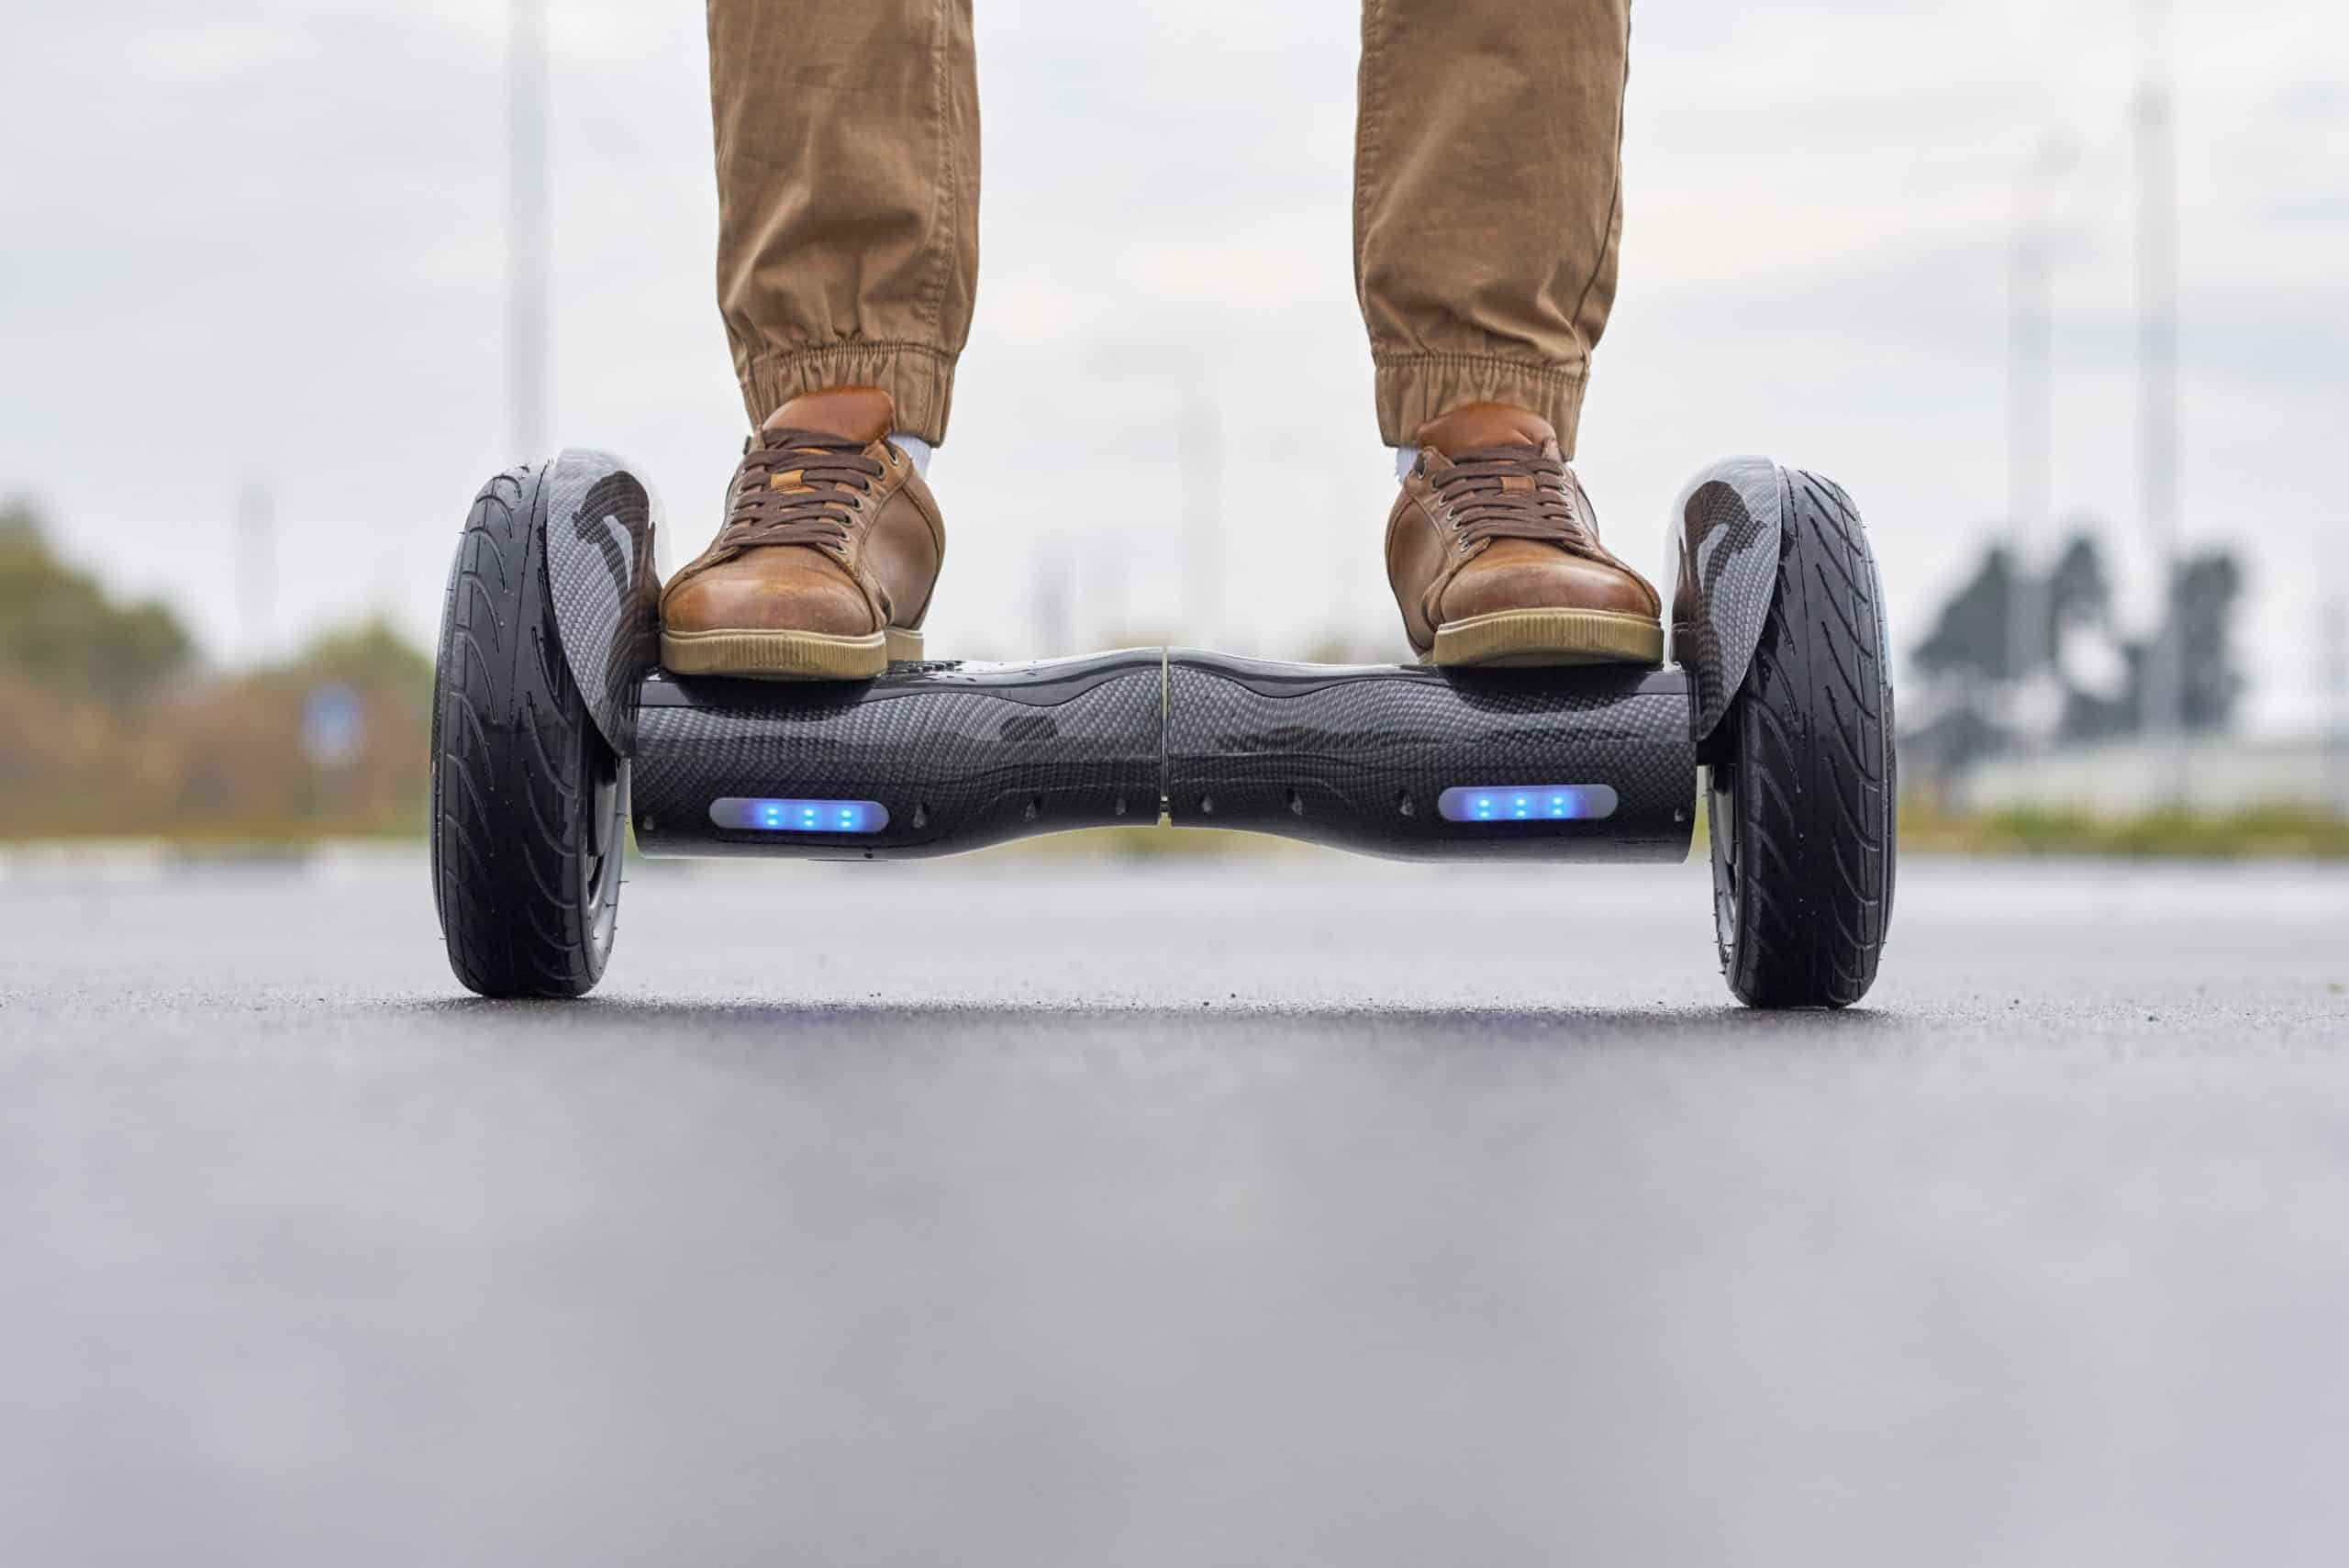 How long does it take to charge a hoverboard? 11